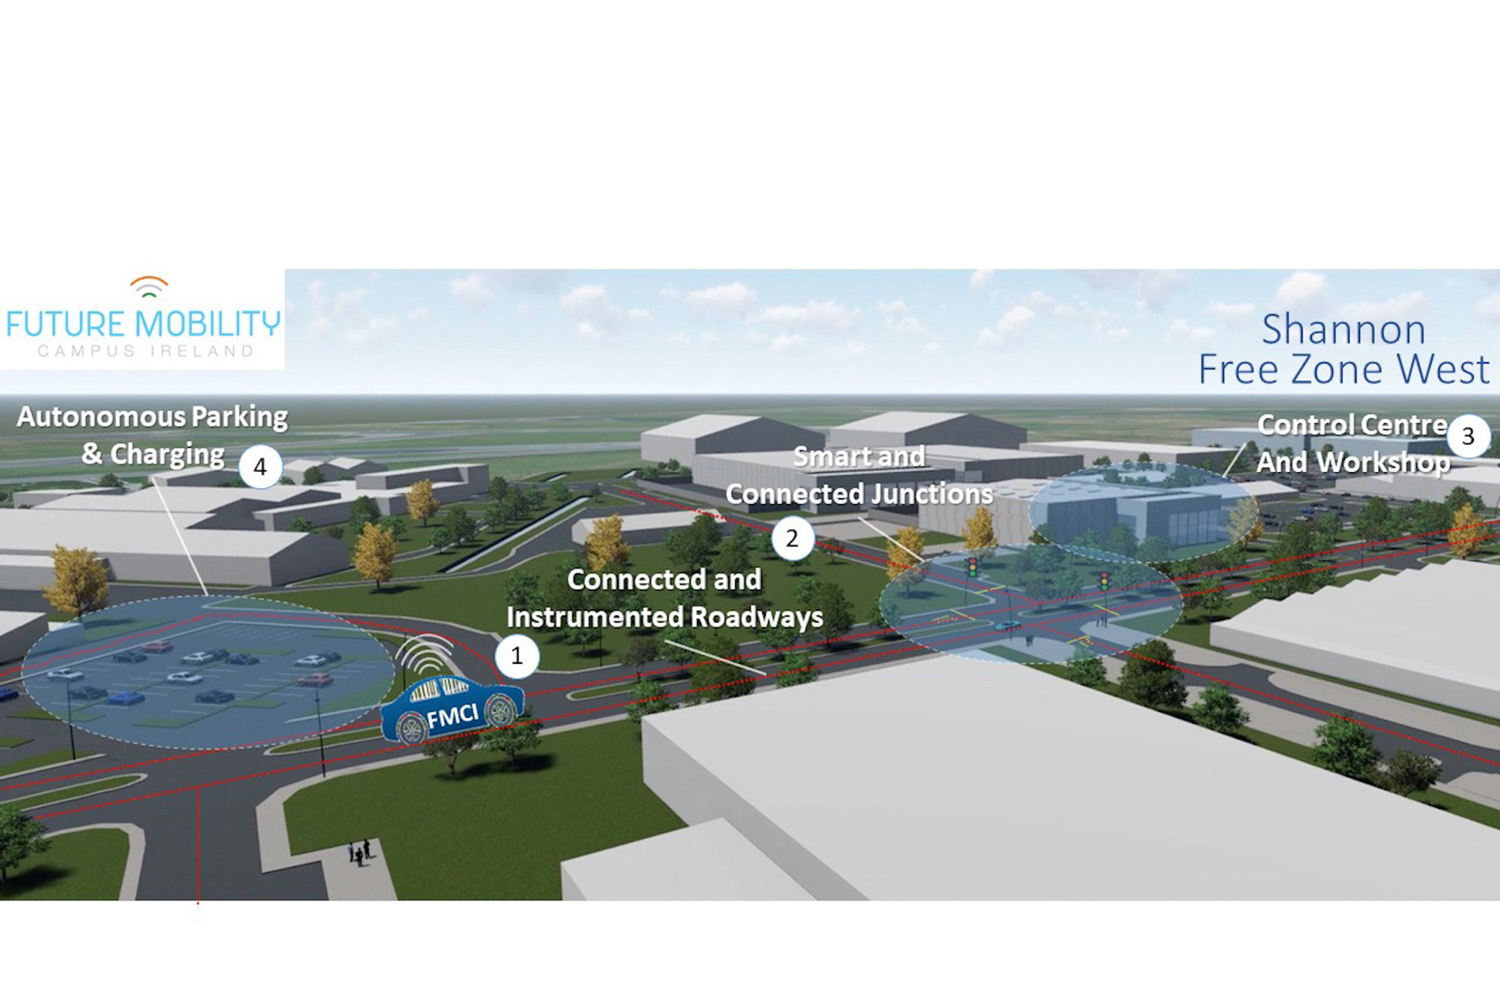 Car News | Future Mobility Campus Ireland in Shannon | CompleteCar.ie